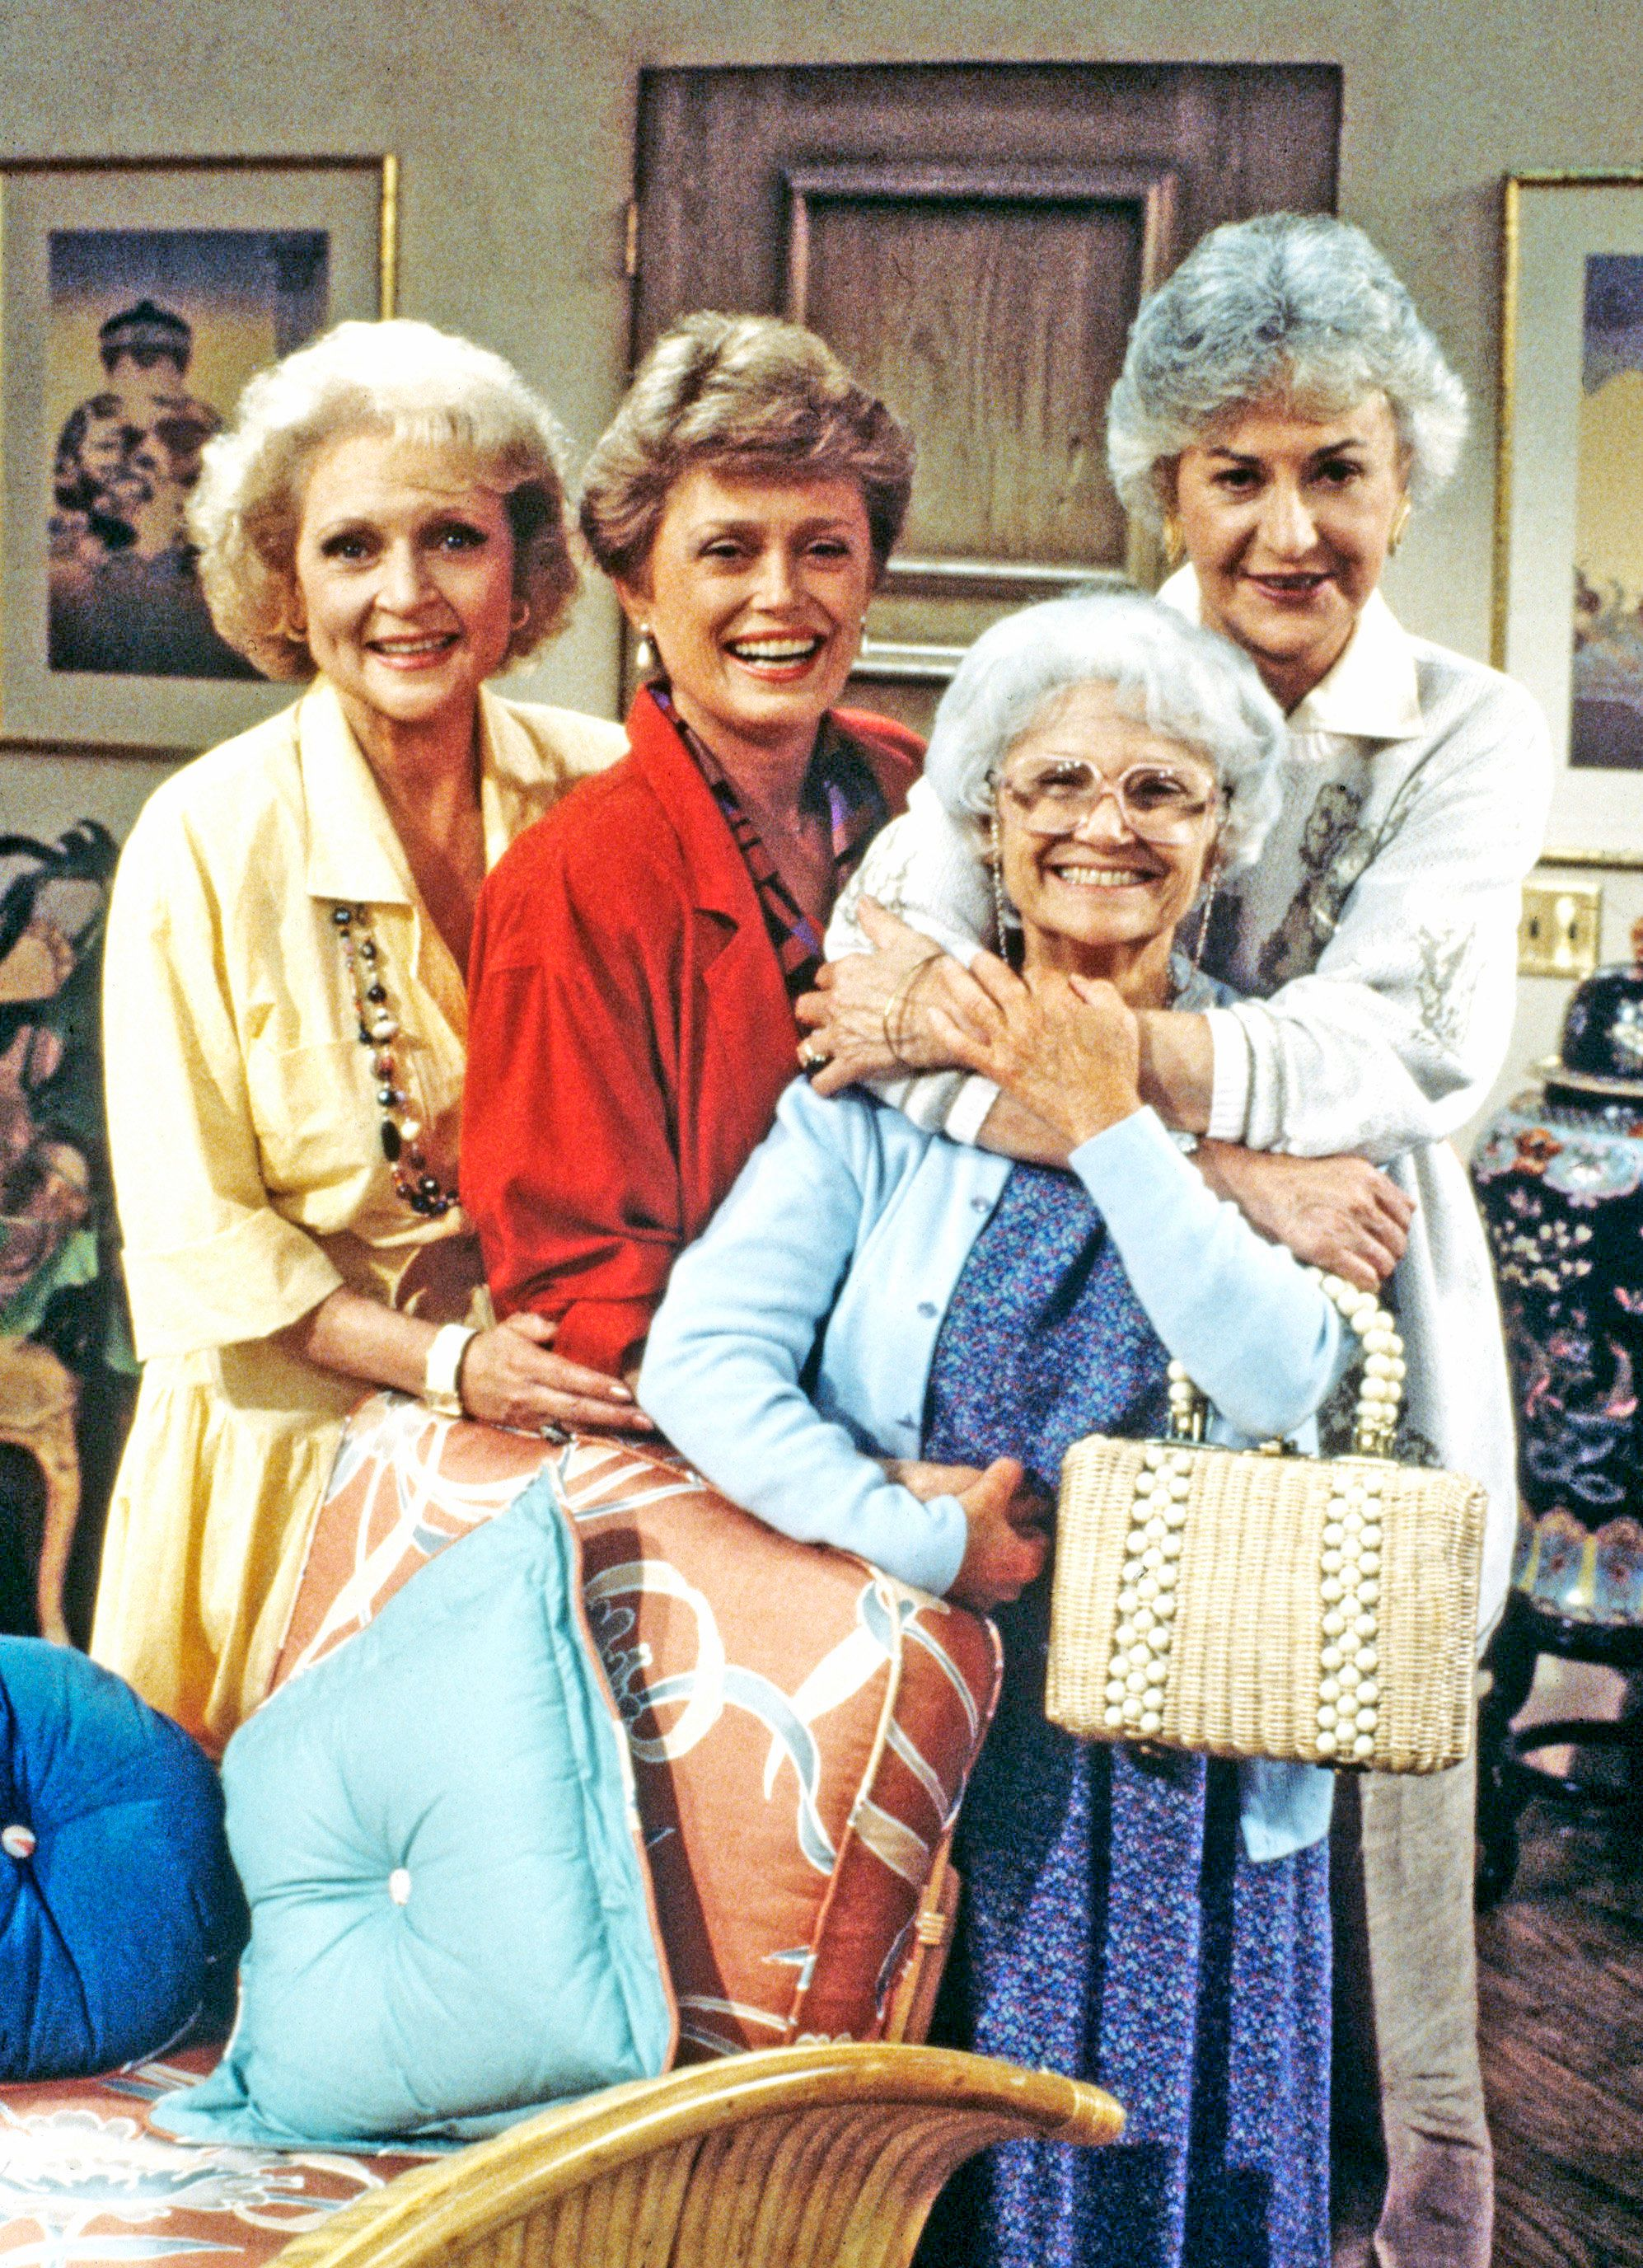 UNITED STATES - APRIL 16:  THE GOLDEN GIRLS - 9/14/85 - 9/14/92, BETTY WHITE (Rose), RUE MCCLANAHAN (Blanche), ESTELLE GETTY (Sophia),, BEA ARTHUR (Dorothy),  (Photo by ABC Photo Archives/ABC via Getty Images)